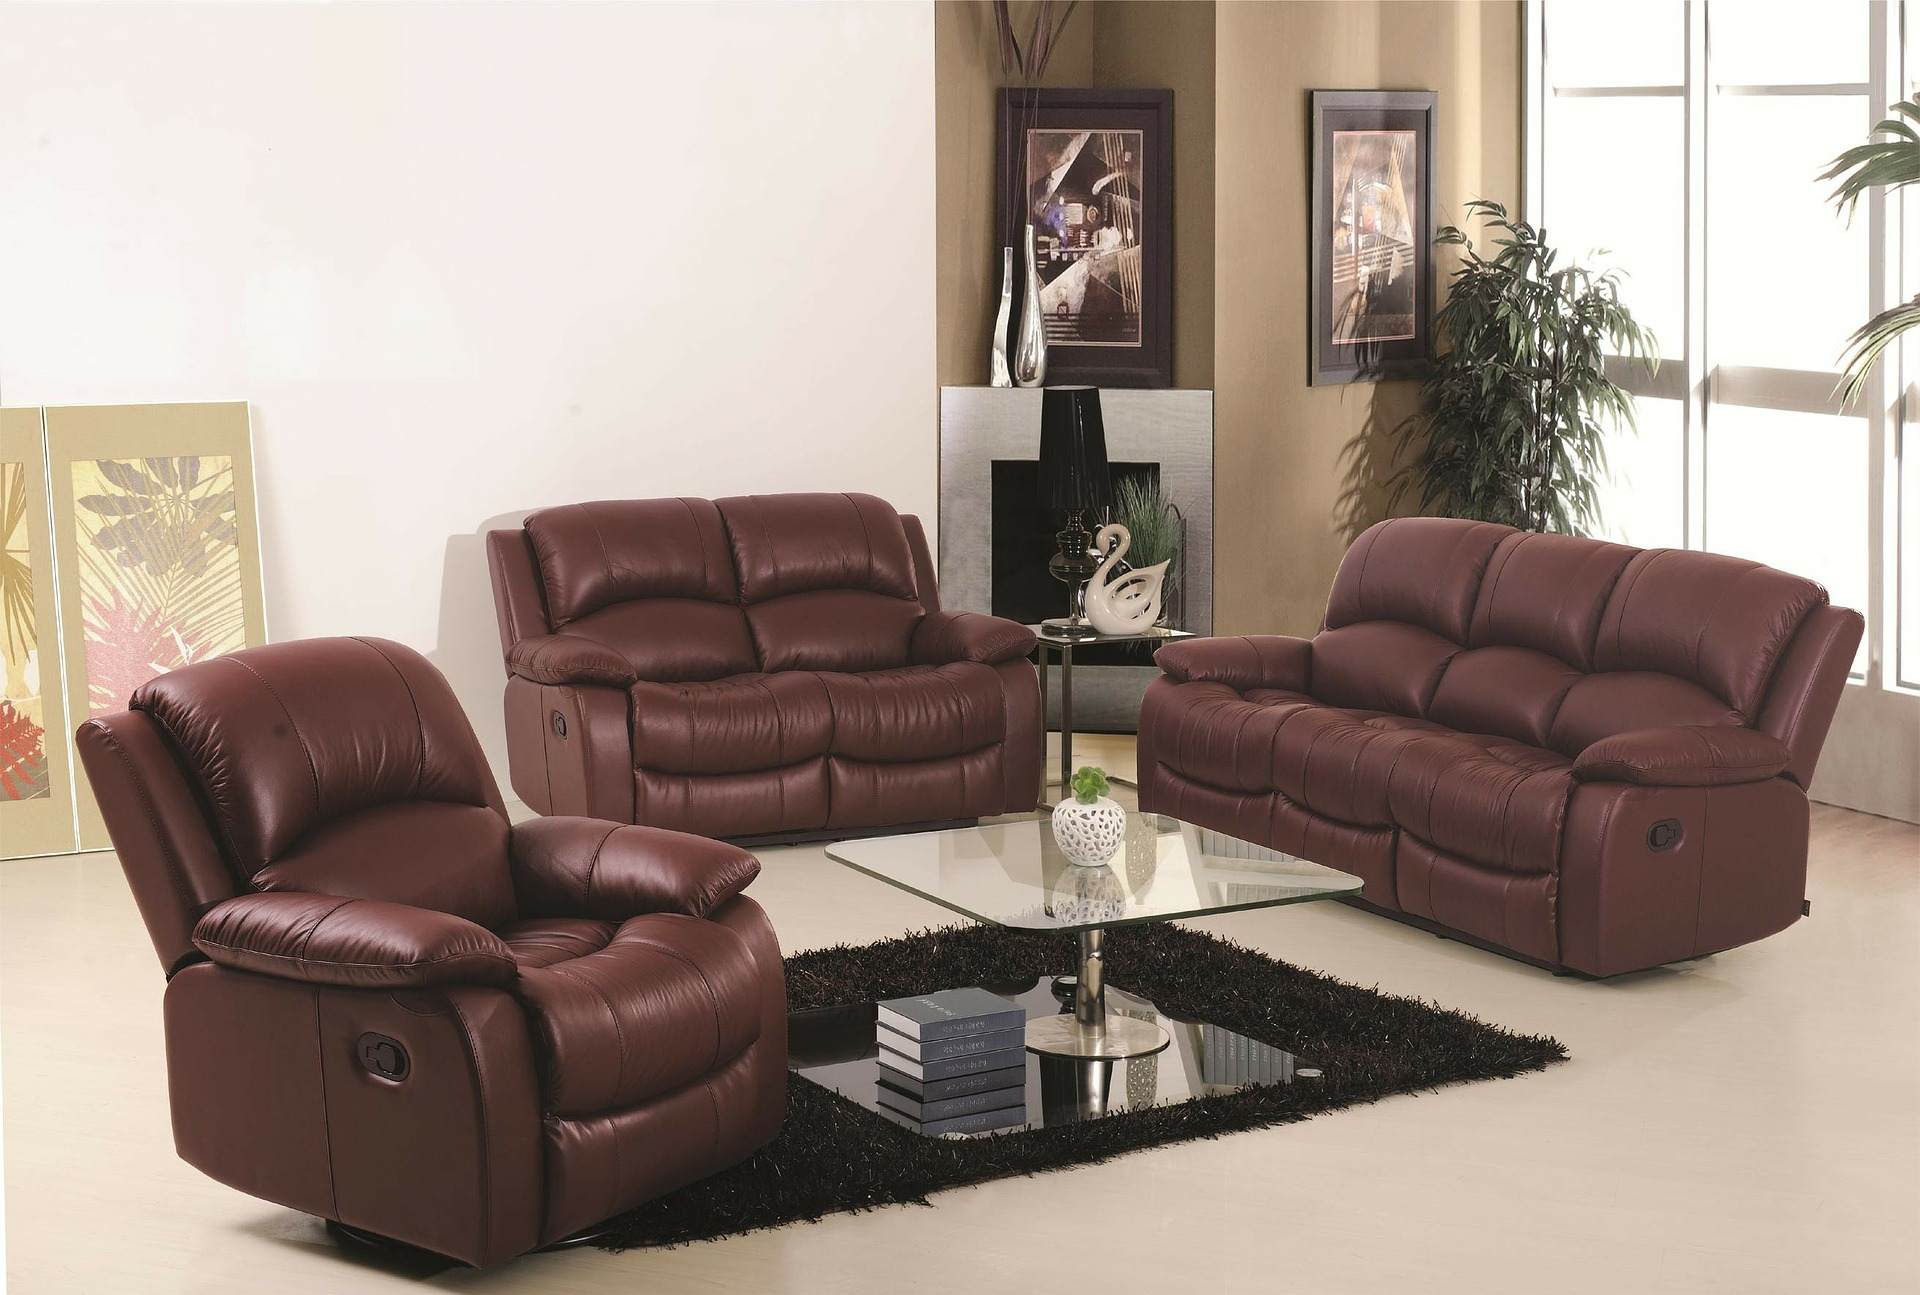 mould removal tips carpet cleaning upholstery cleaning vancouver. Black Bedroom Furniture Sets. Home Design Ideas